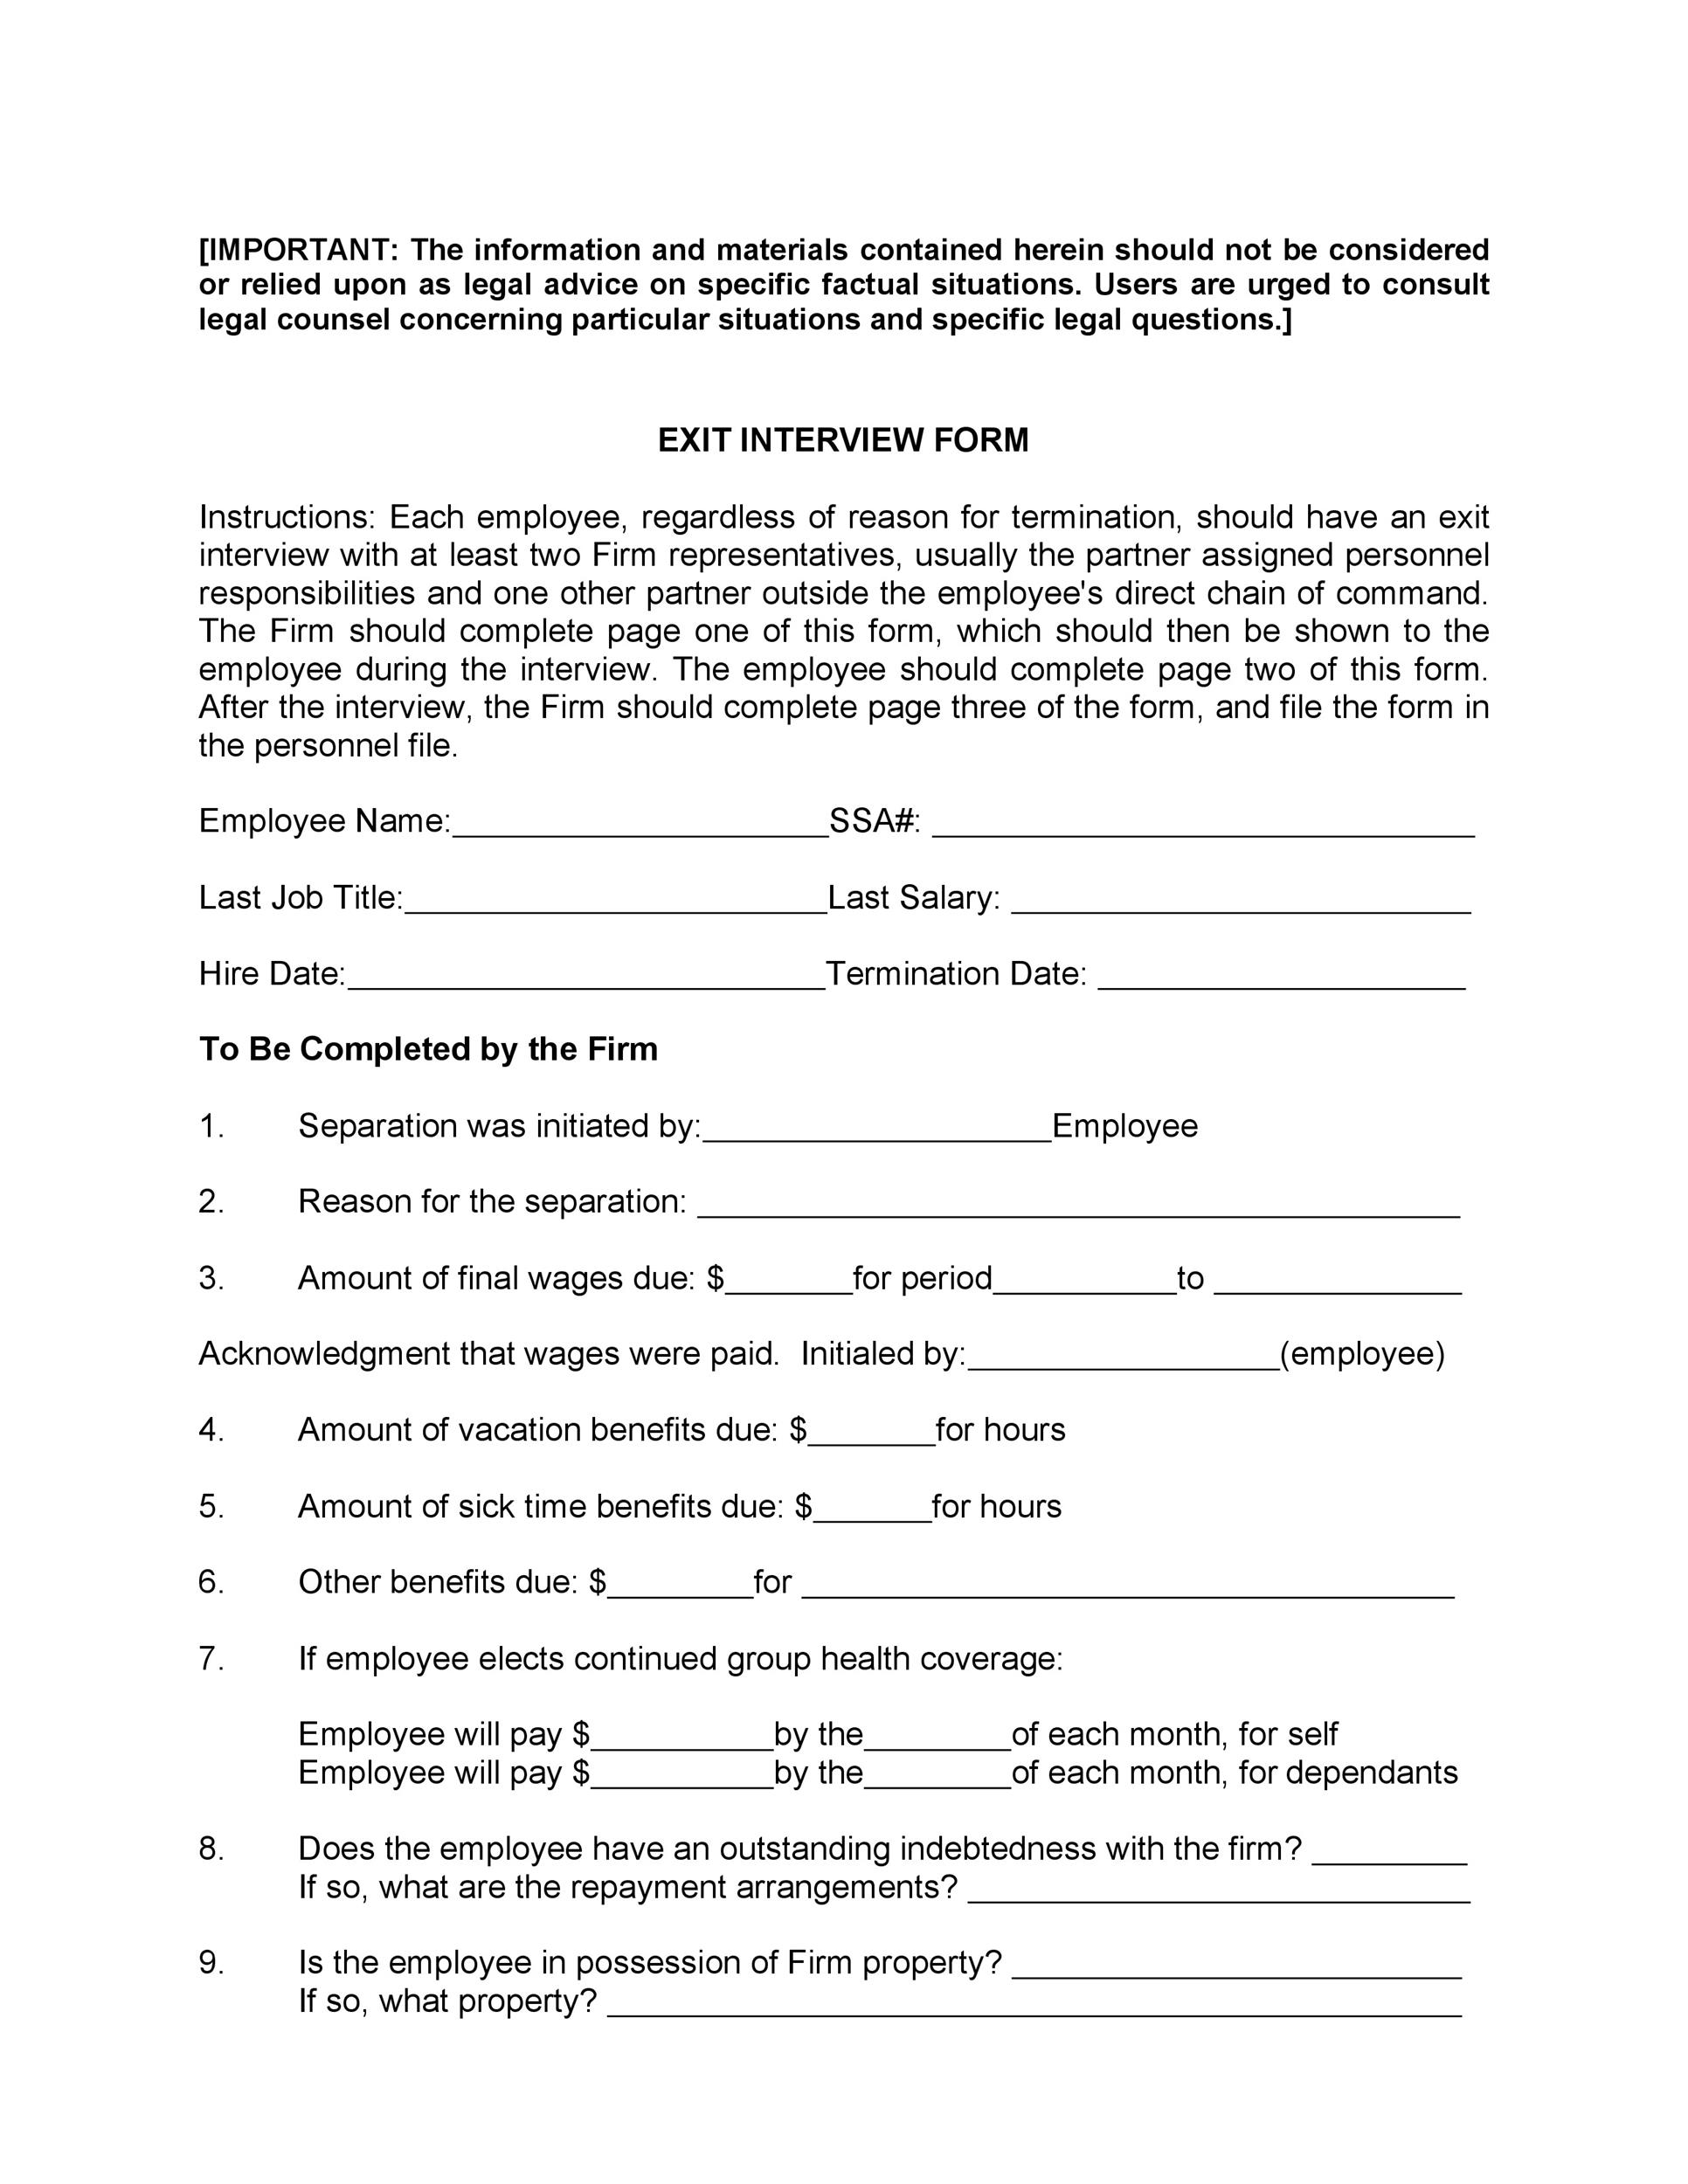 Free exit interview template 27